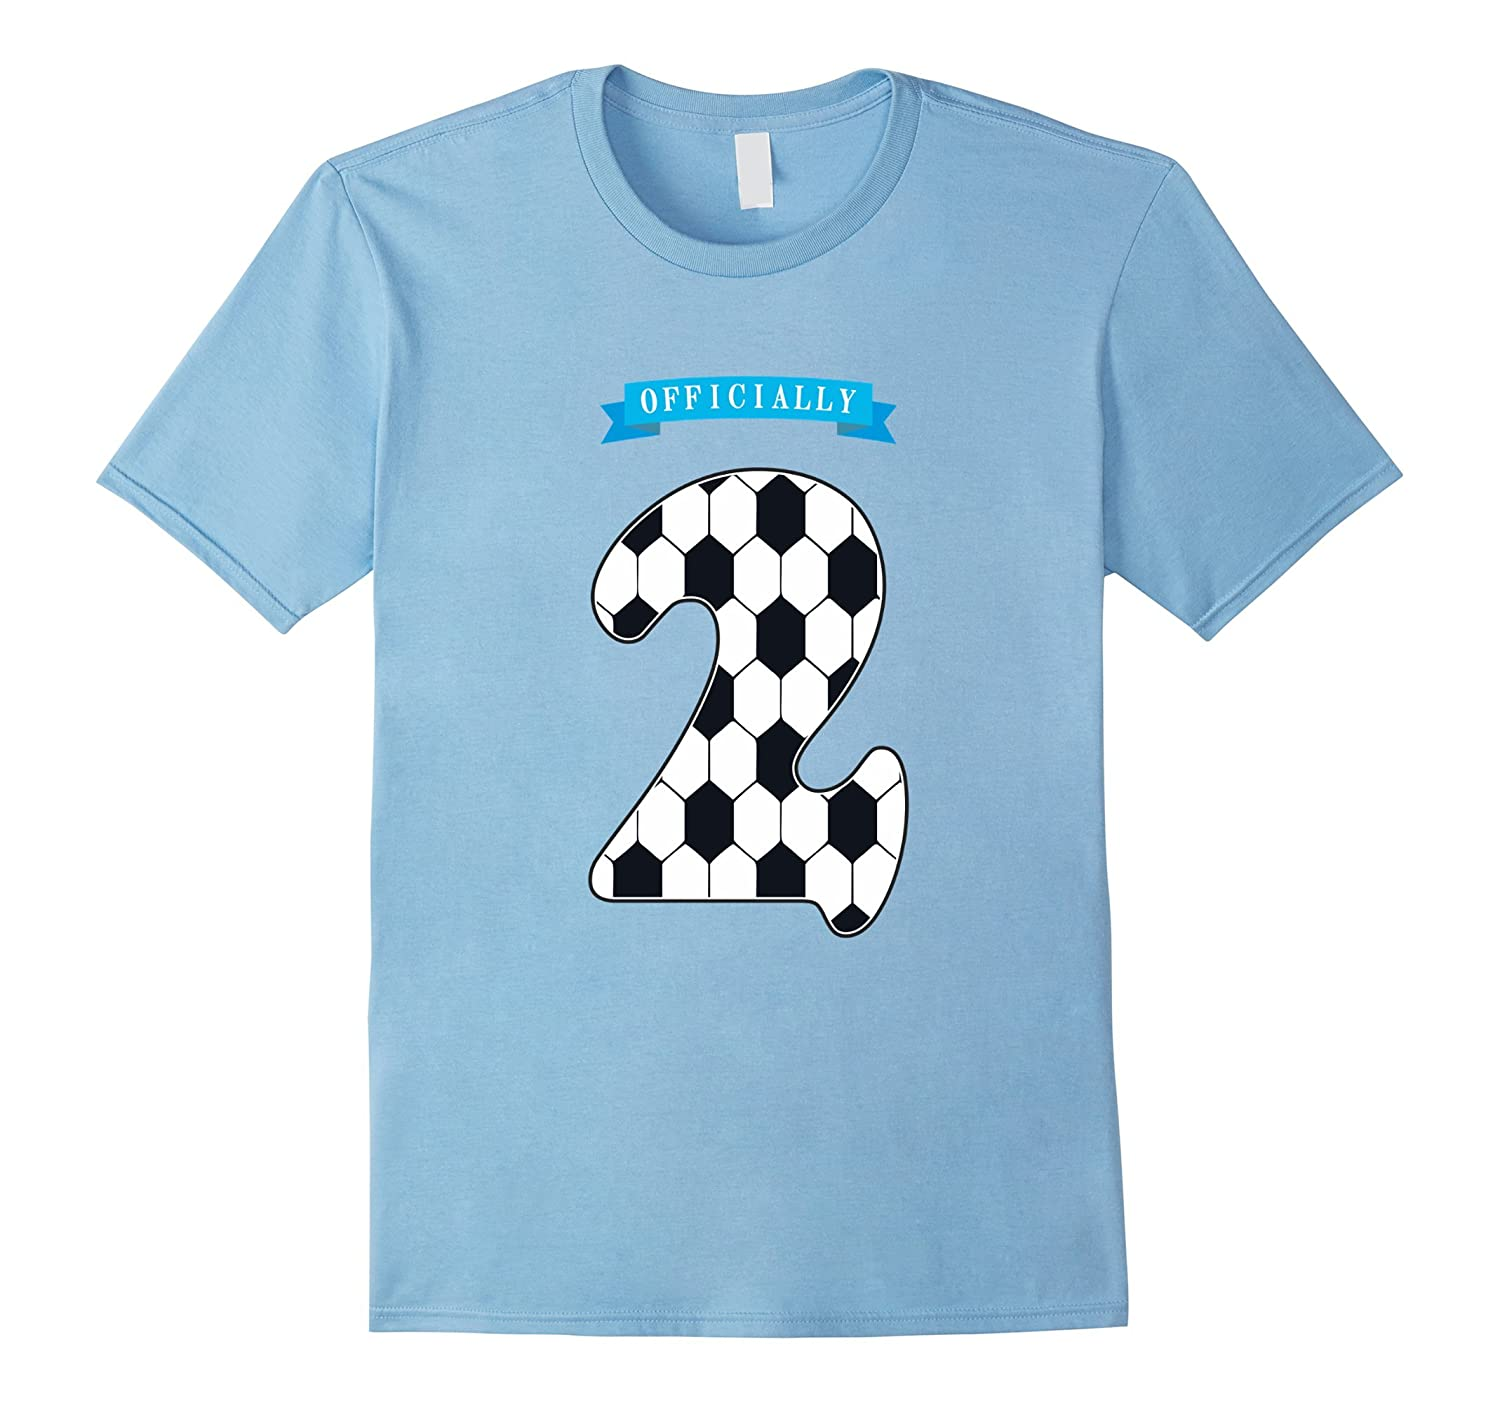 2 Years Old T Shirt 2nd Birthday Number Tee Soccer Kids Gm